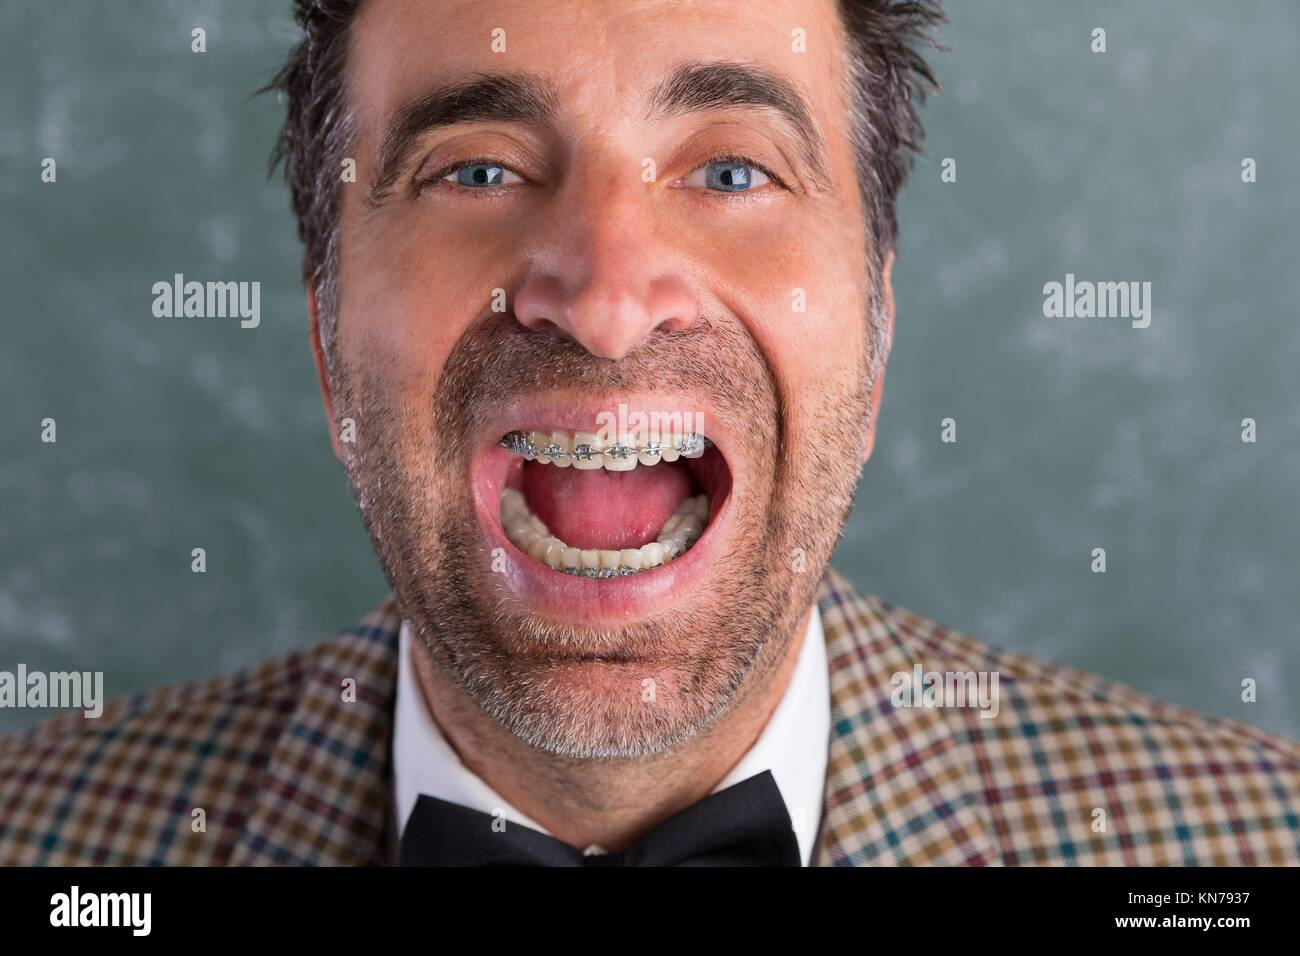 Nerd silly retro man with braces funny expression open mouth. - Stock Image